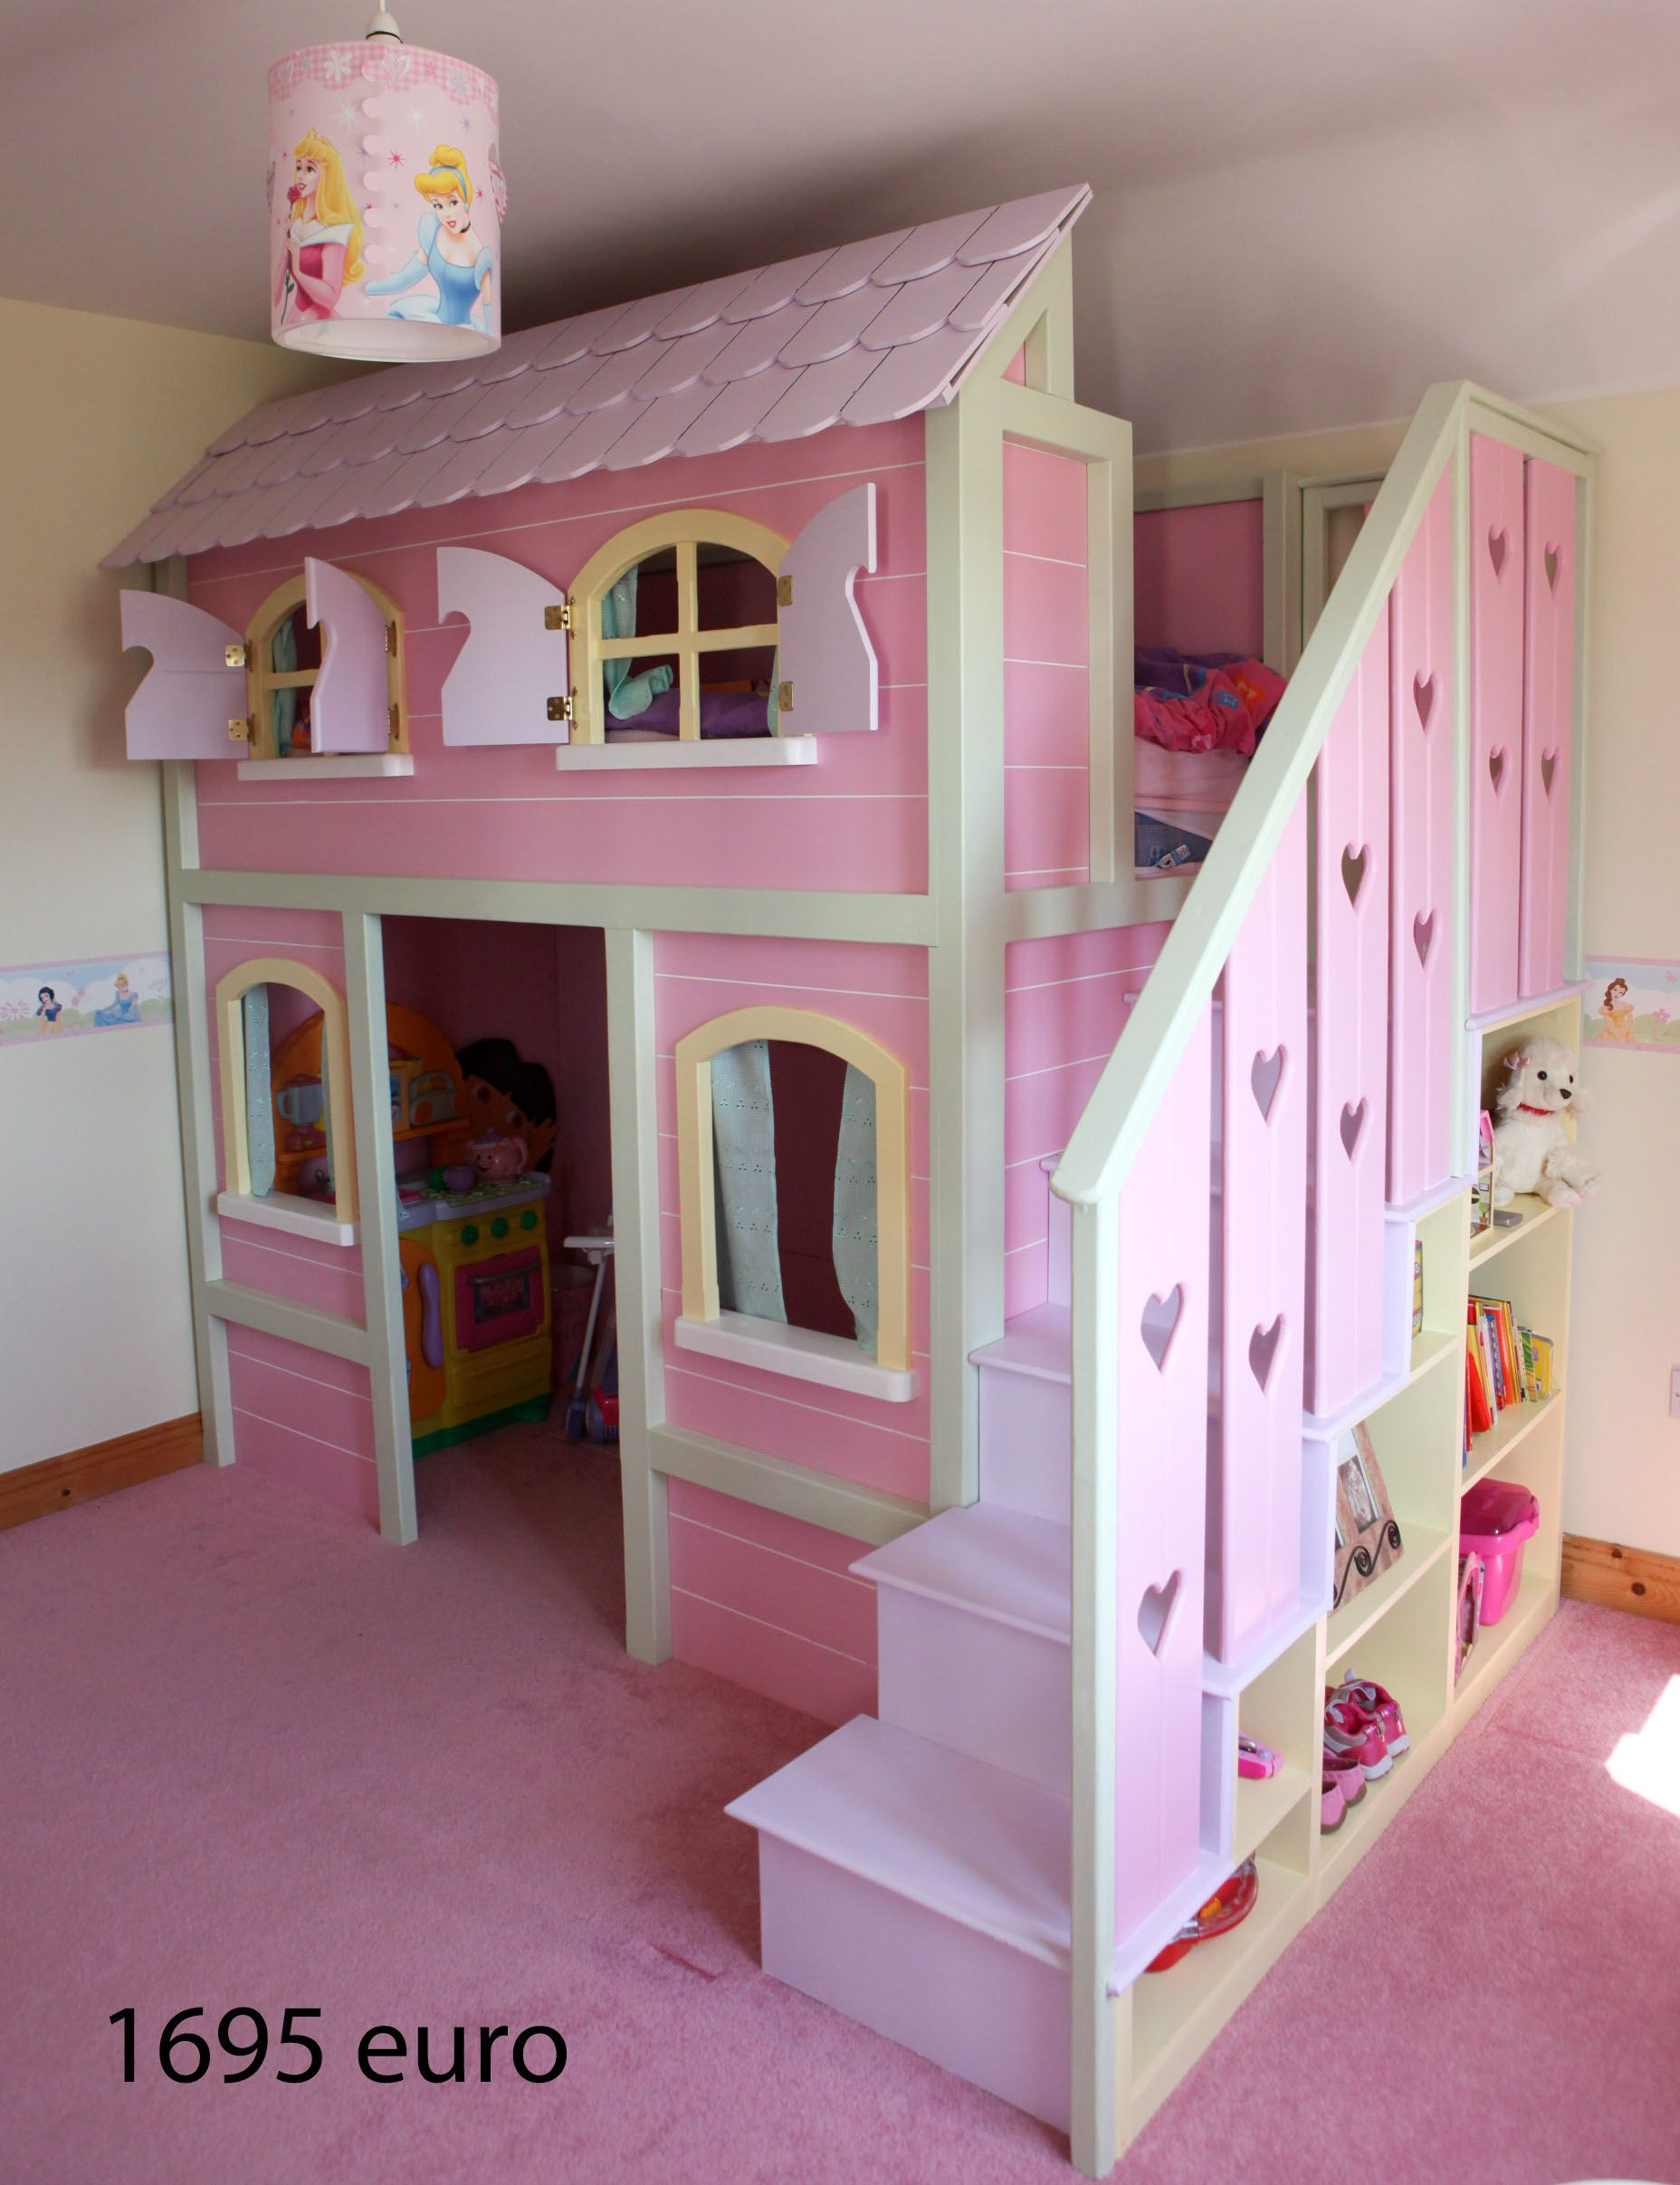 Bunk Bed Designs For Kids Room: Cute And Plans, Love The Stairs